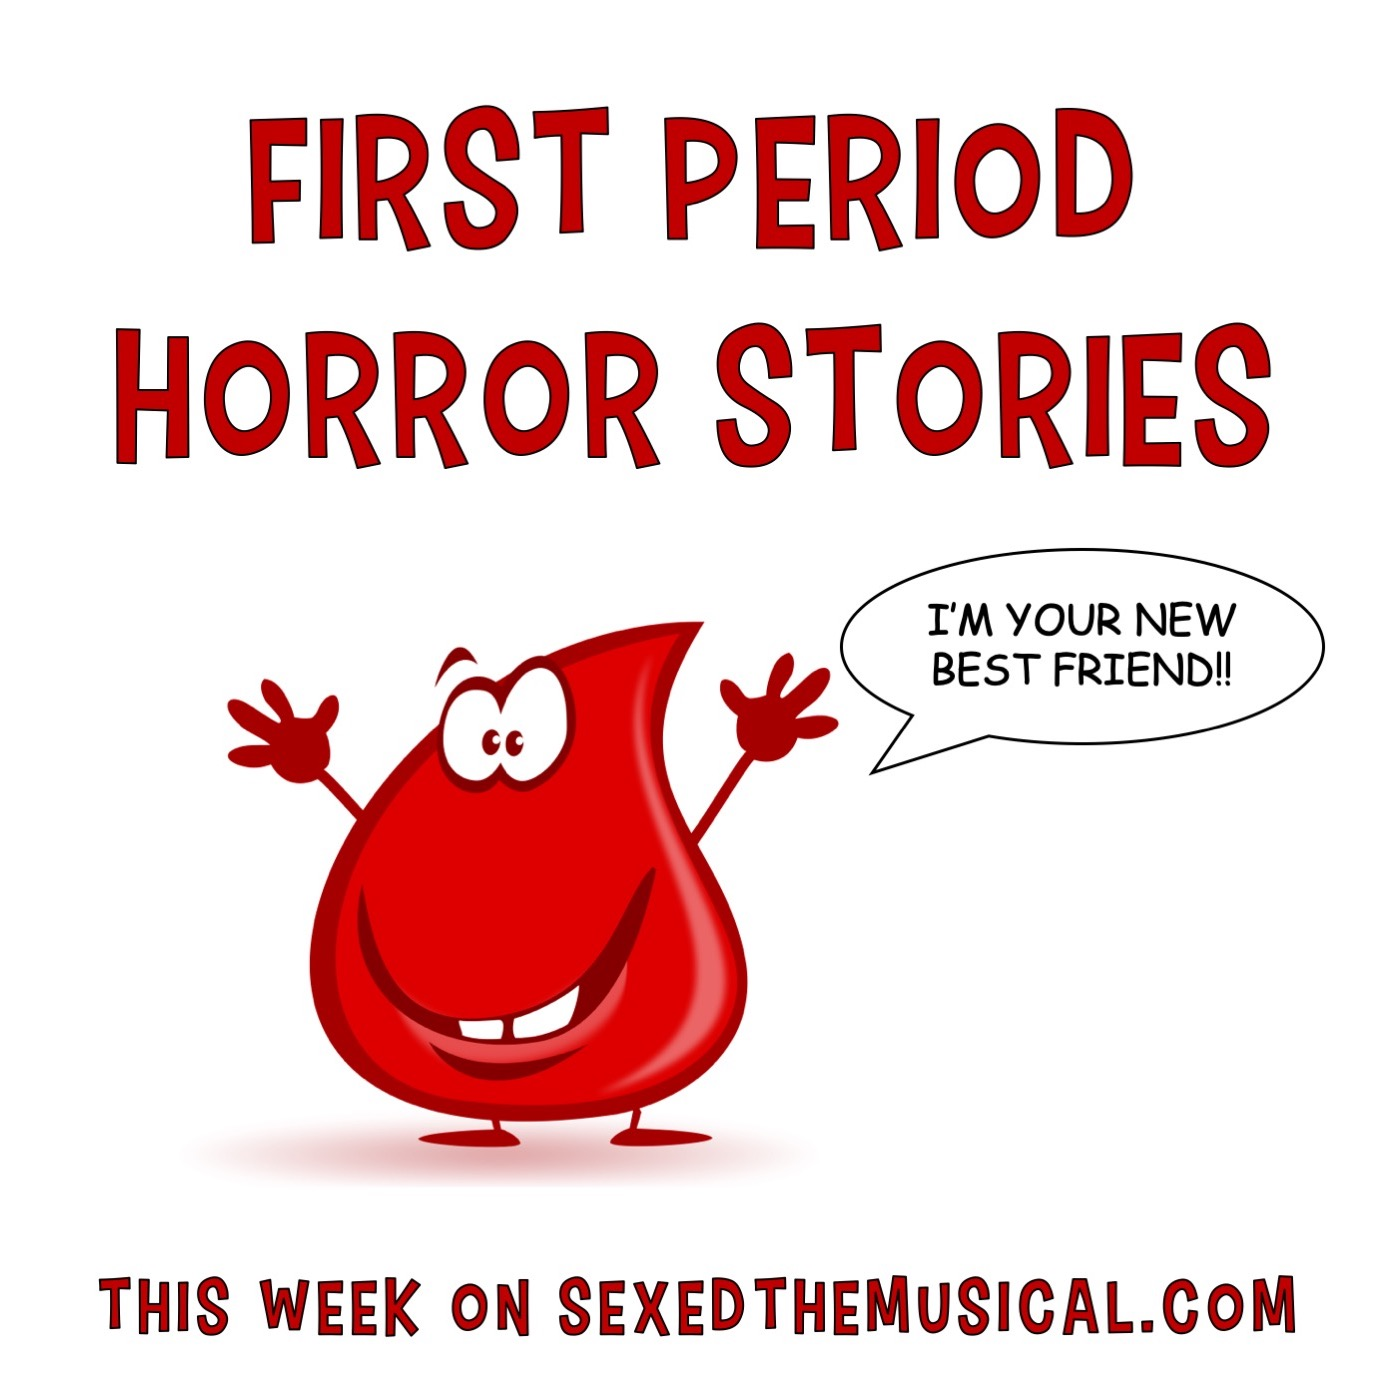 FIRST PERIOD HORROR STORIES